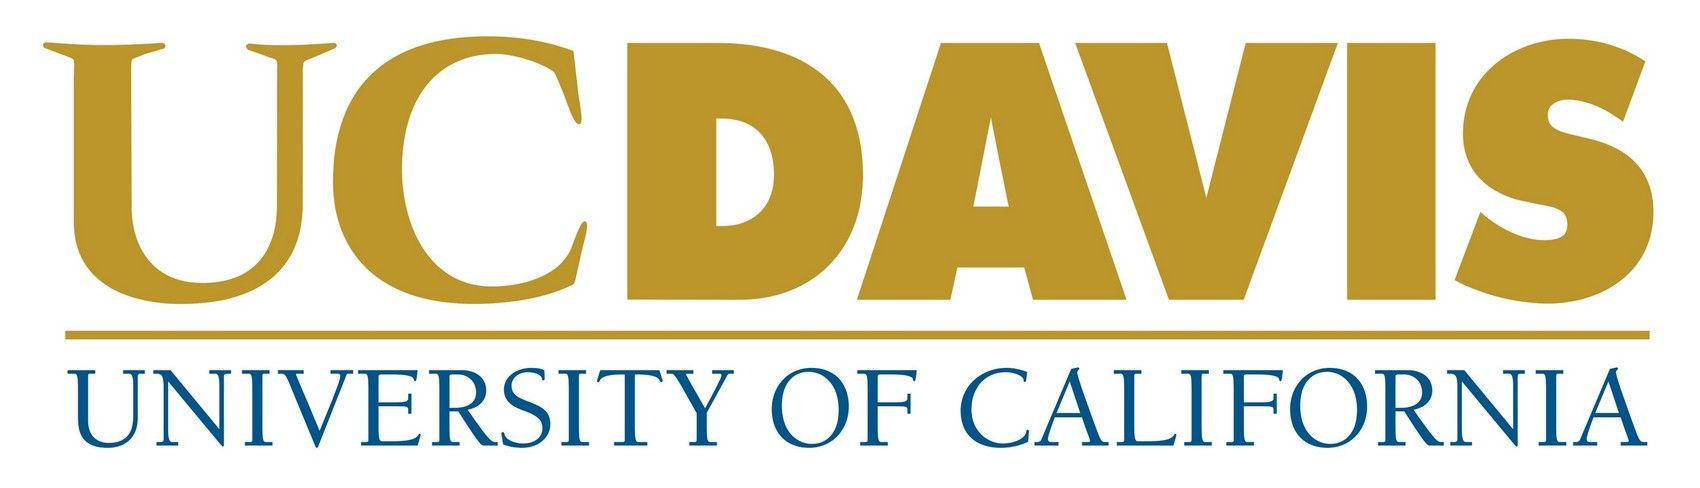 Ucdavis university of california davis arm eps file aau ucdavis university of california davis arm eps file aau aggies american universities amerikadaki niversiteler amerikan niversiteleri thecheapjerseys Image collections